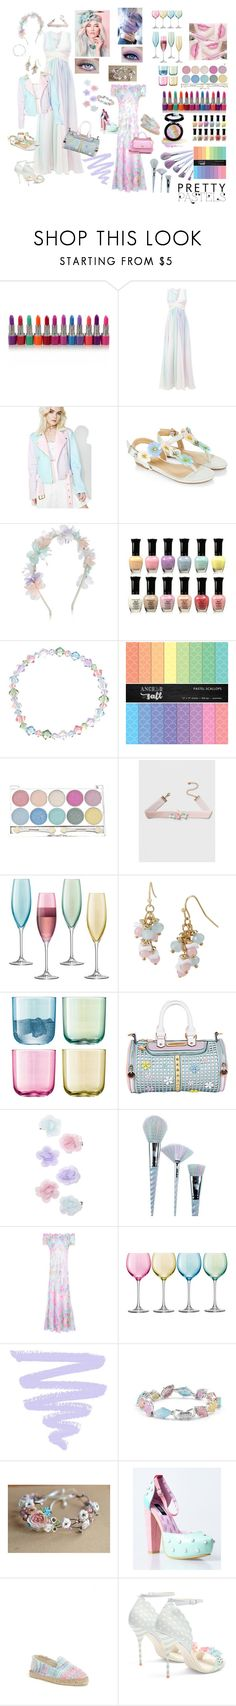 """""""Pretty Pastels"""" by lawvel ❤ liked on Polyvore featuring Zuhair Murad, Sugarpills, Monsoon, Anastasia Beverly Hills, Dorothy Perkins, LSA International, Mixit, Nicole Lee, Unicorn Lashes and RIXO London"""